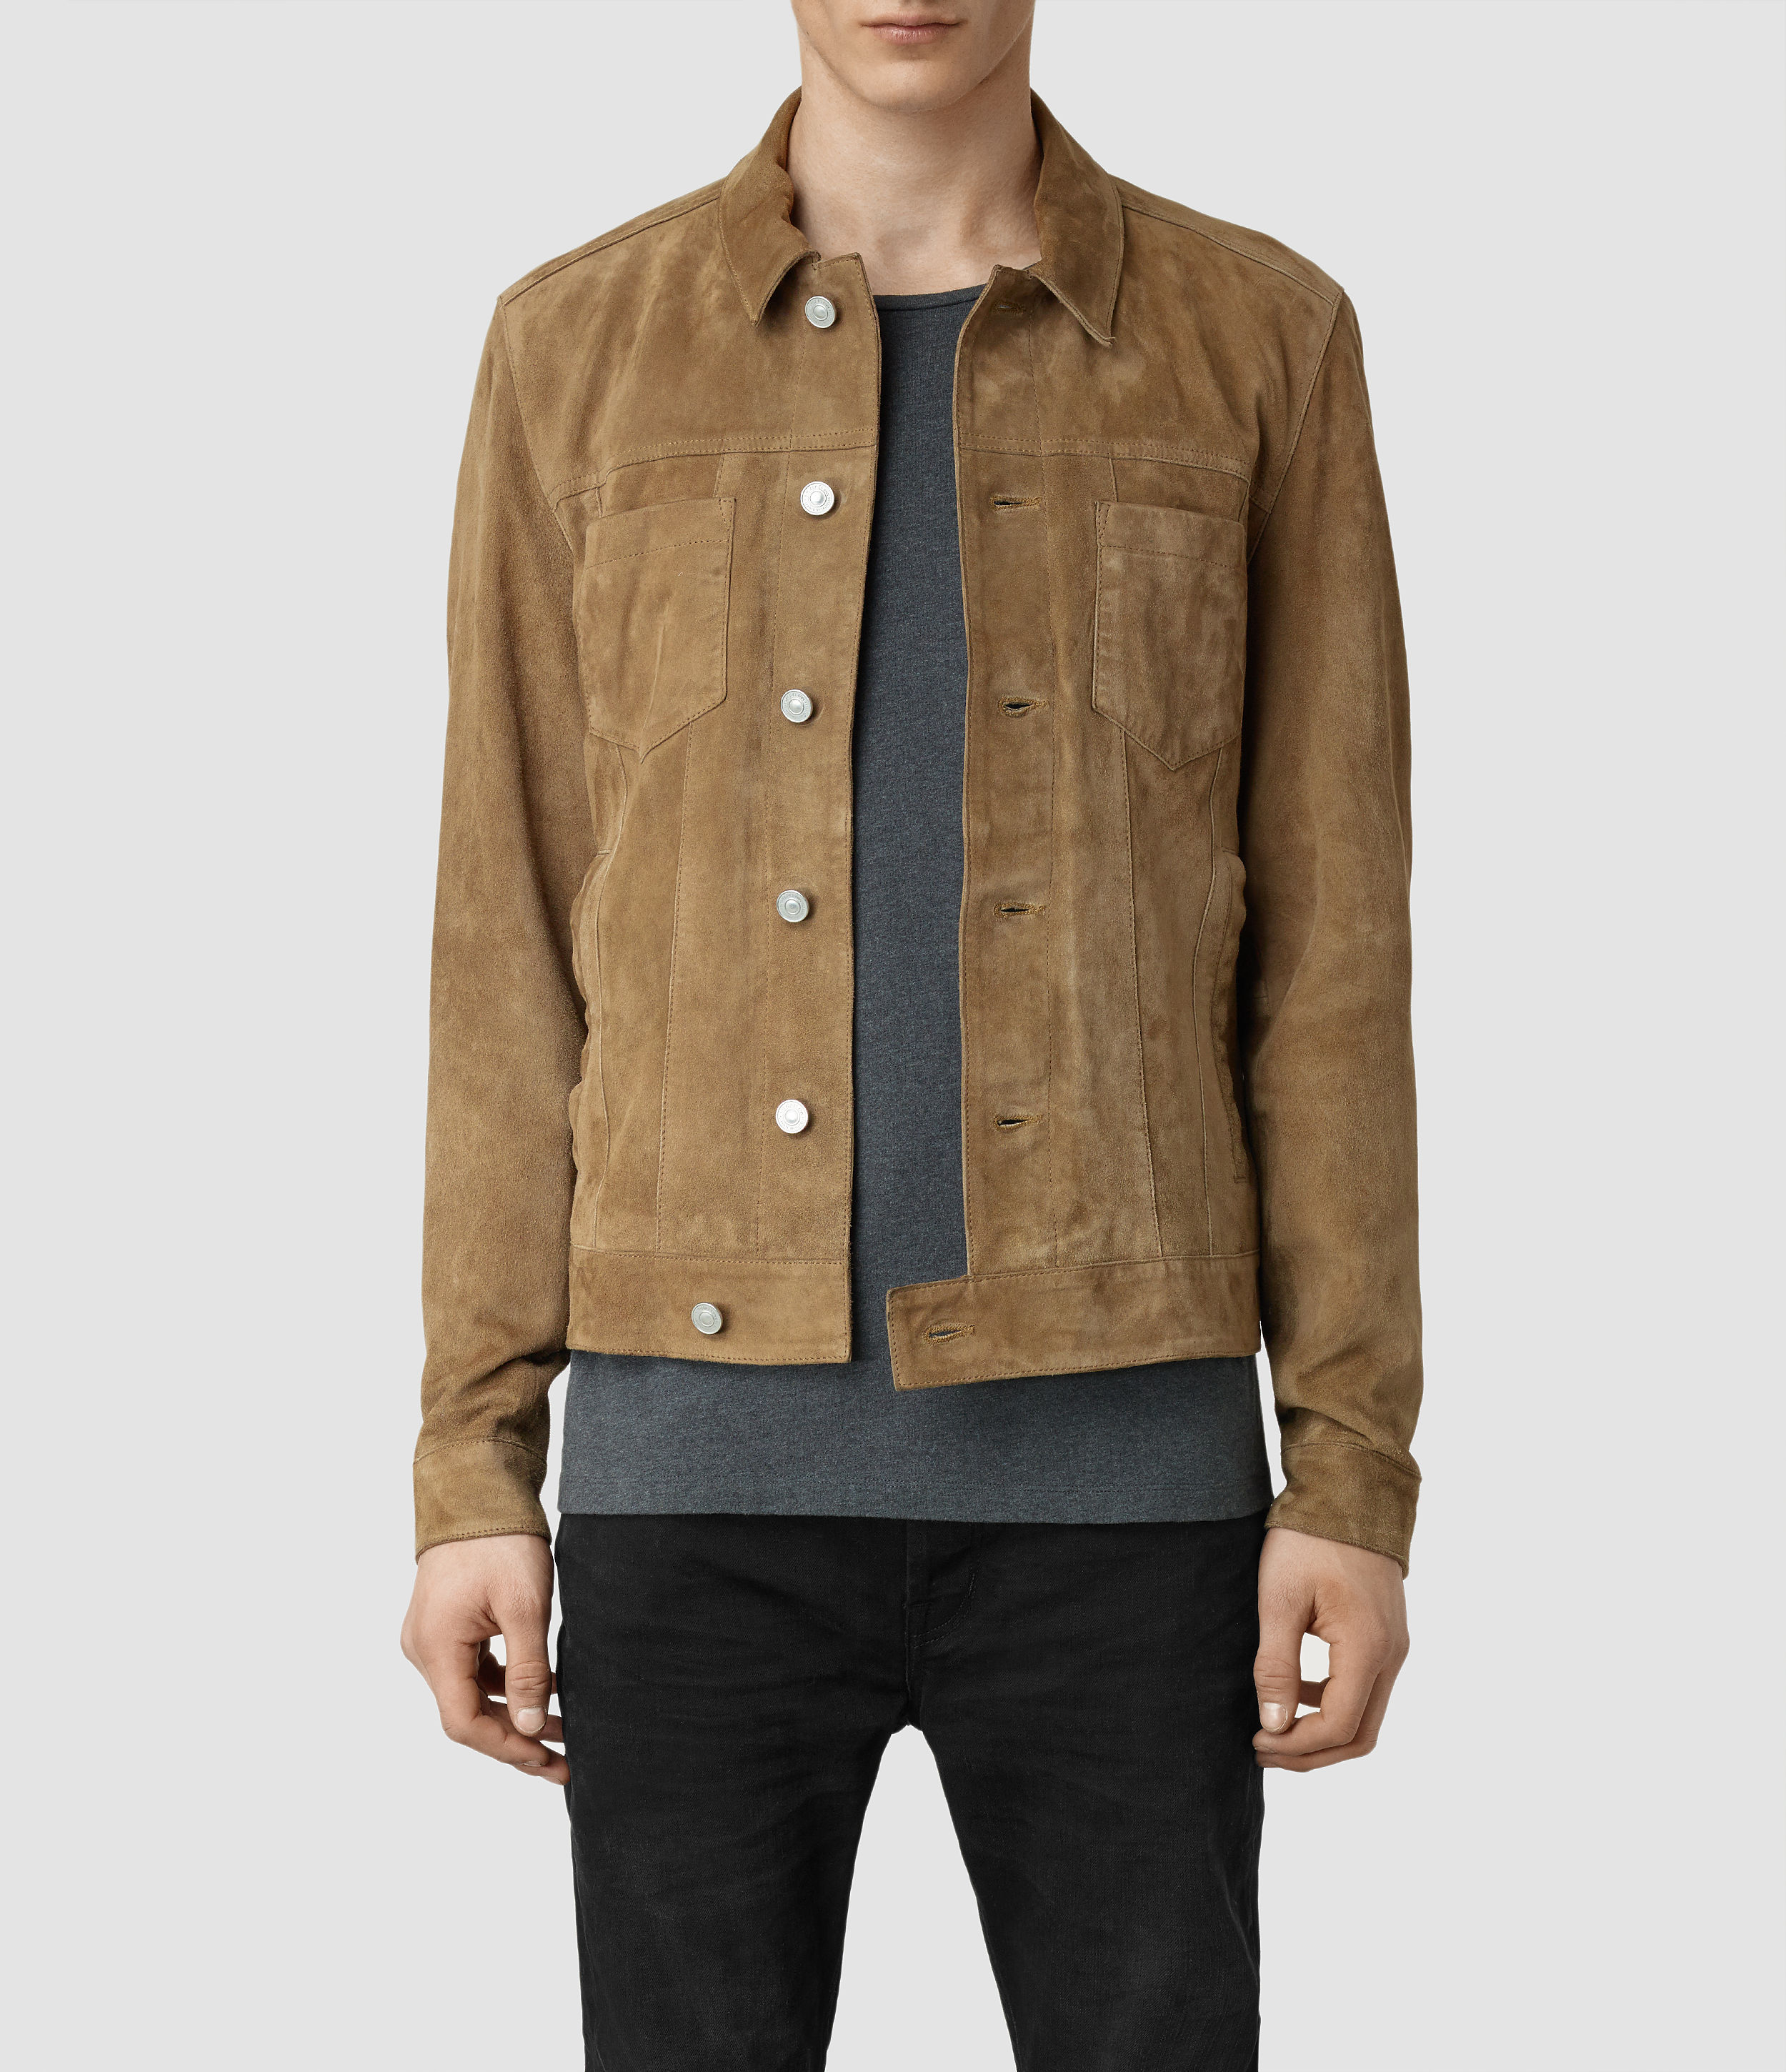 The suede jacket should have a place in every man's wardrobe thanks to its classic appeal and luxuriously soft finish. We round up the brands who do this outerwear icon best.